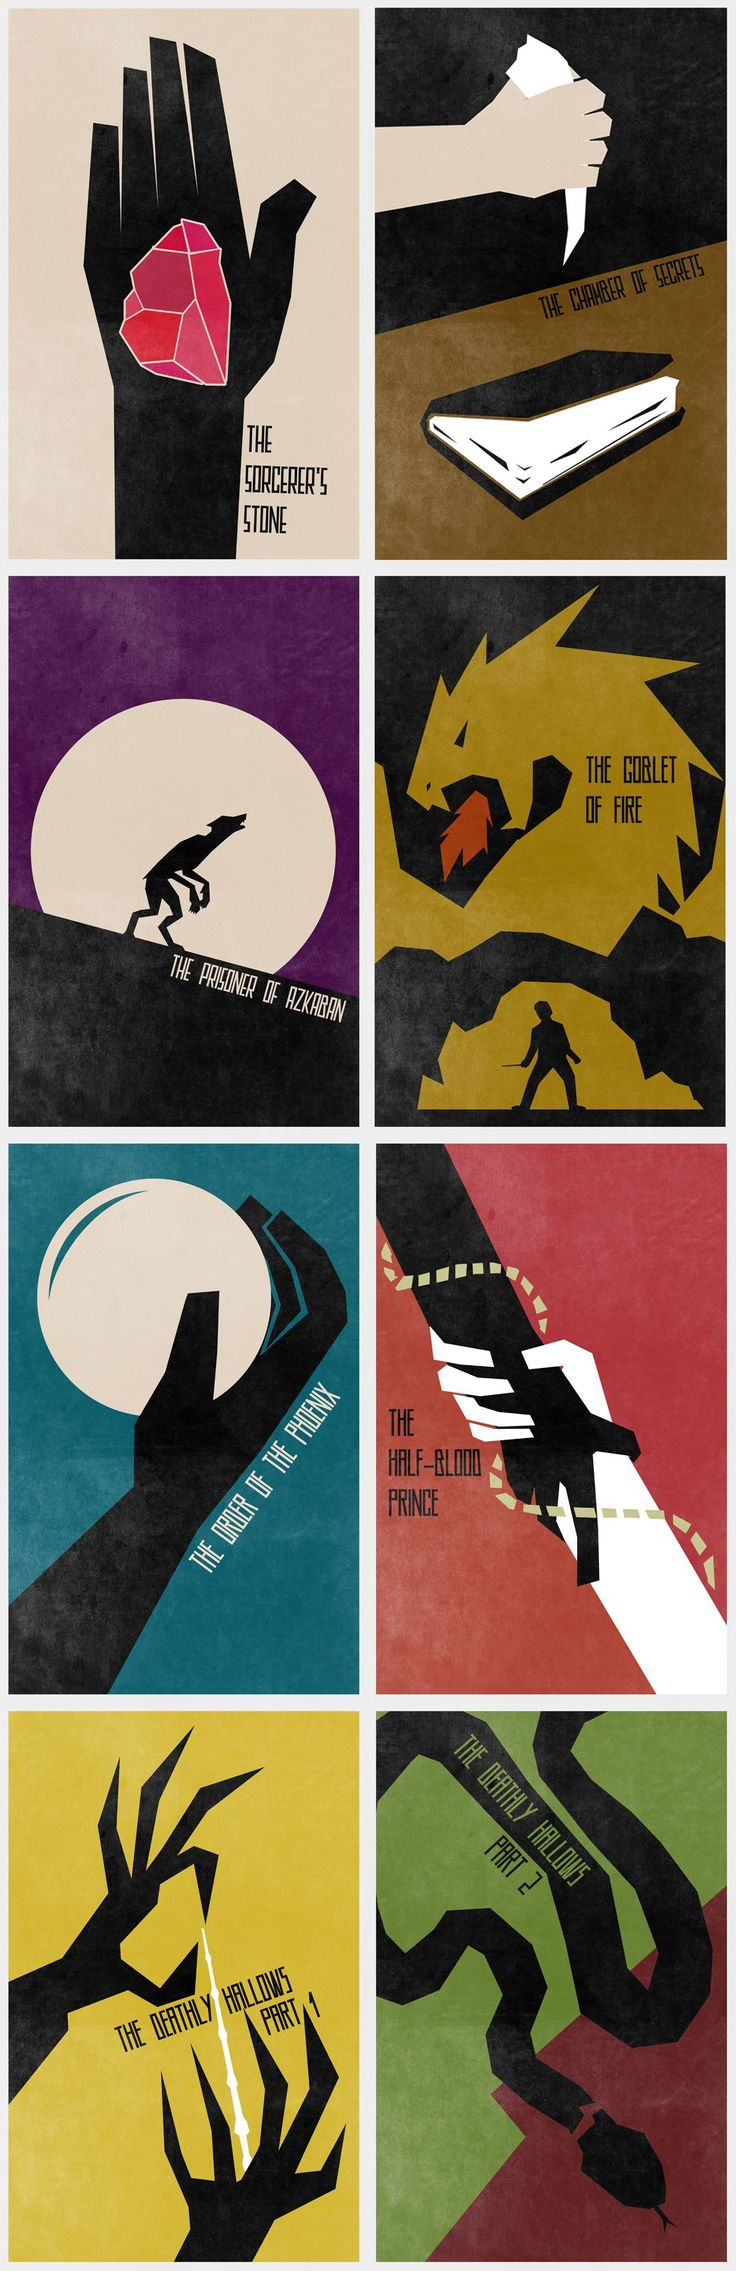 Parts of a poster design - Harry Potter Posters I Found Such Joy In This Delightful Series I Miss You